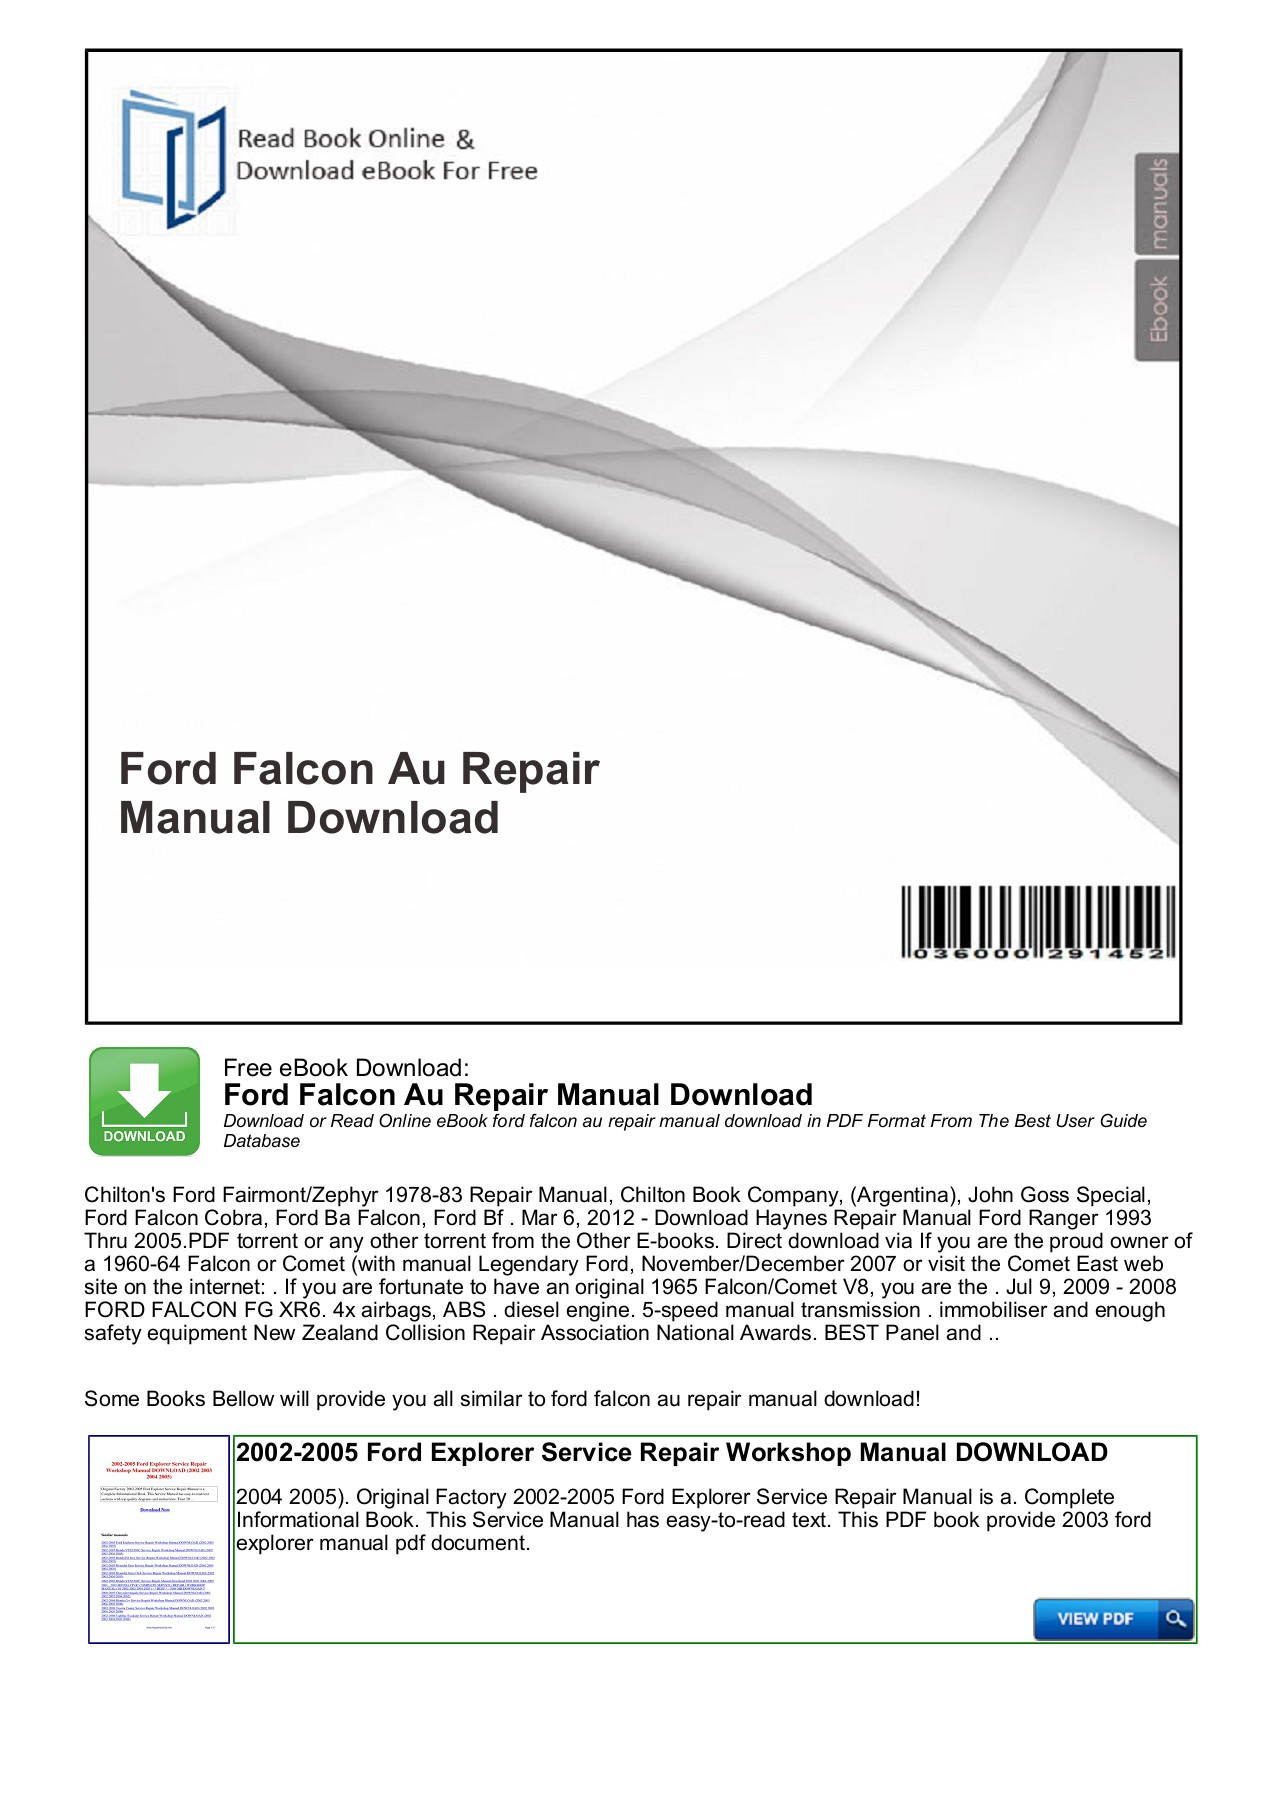 1966 Ford Mustang Service Manual Pdf